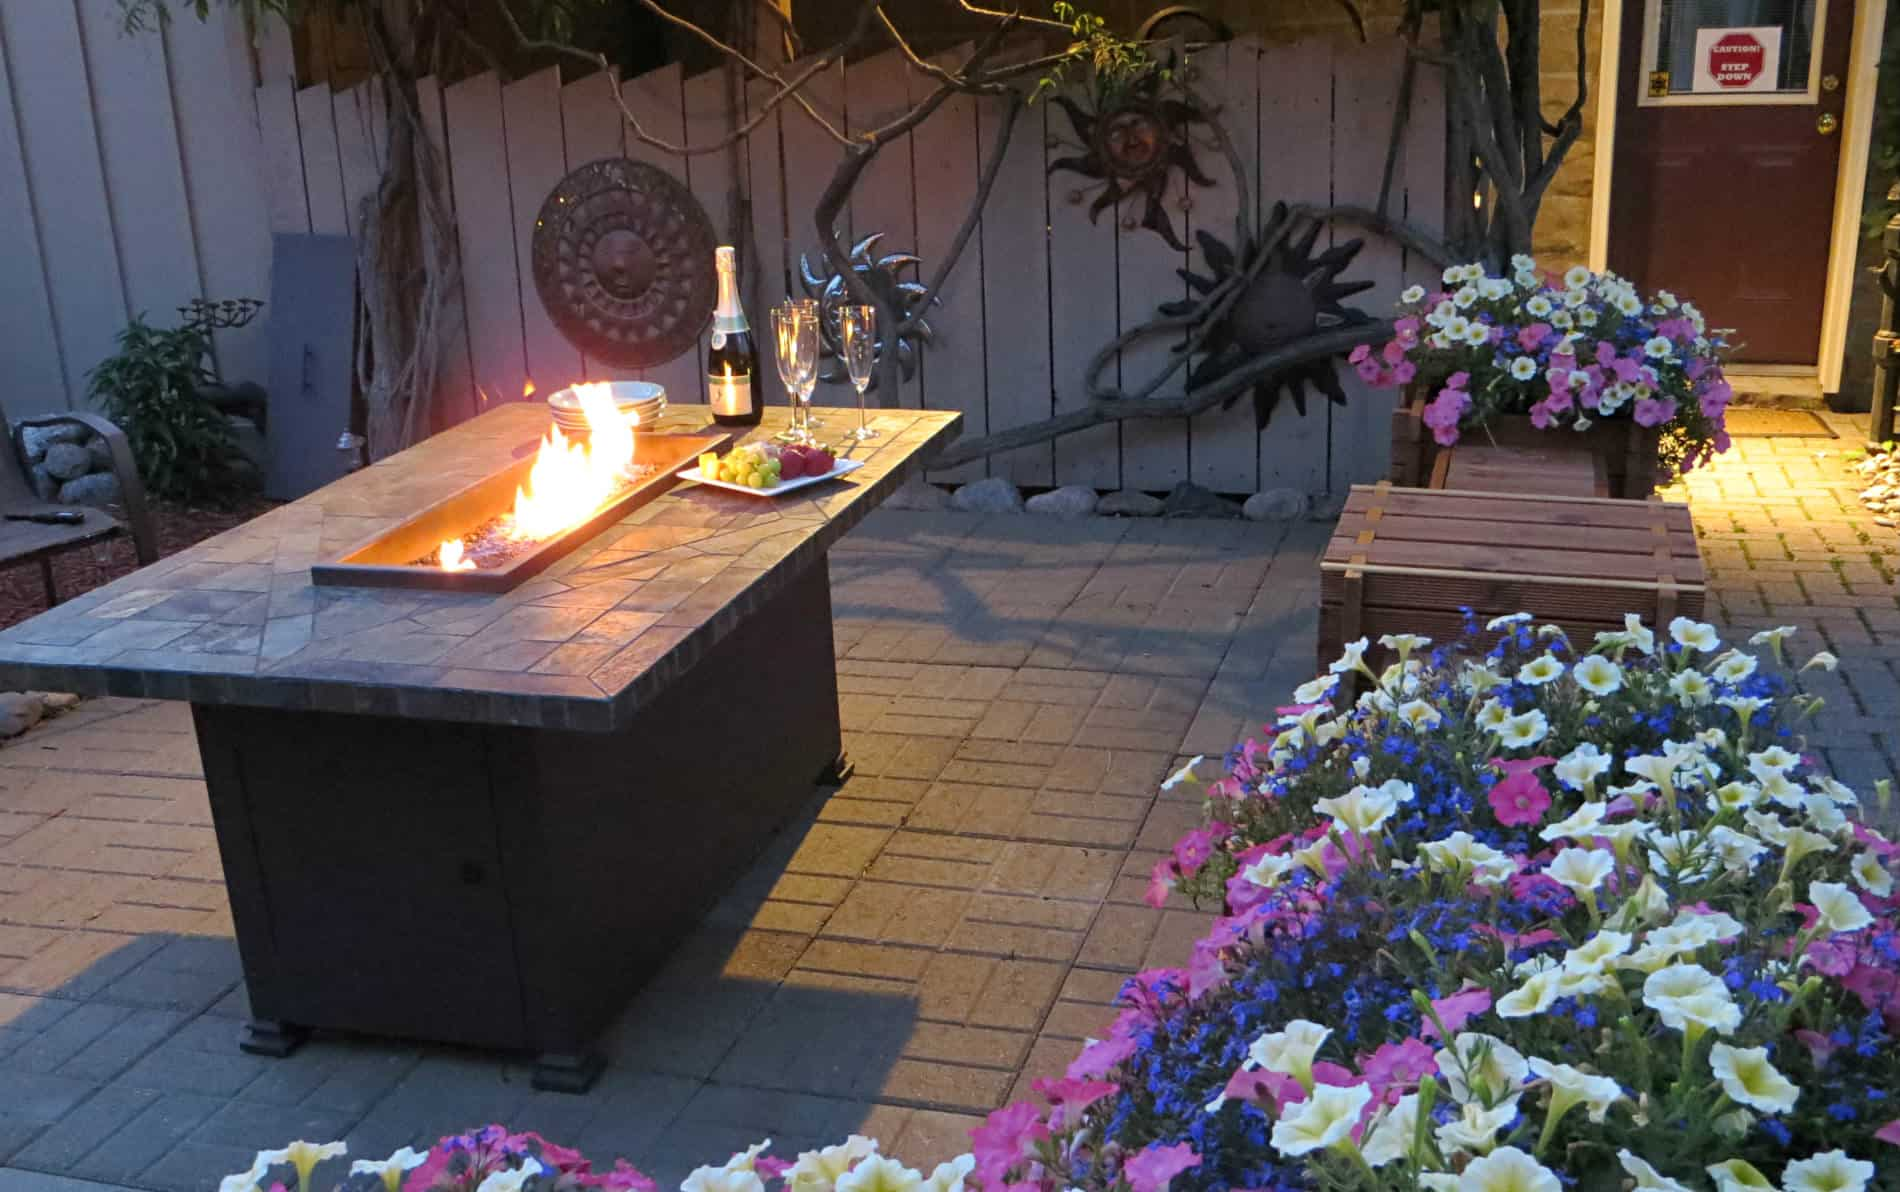 Rectangular table with fire in the middle, two glasses, champagne bottle and cheese tray with purple, pink and white flowers.